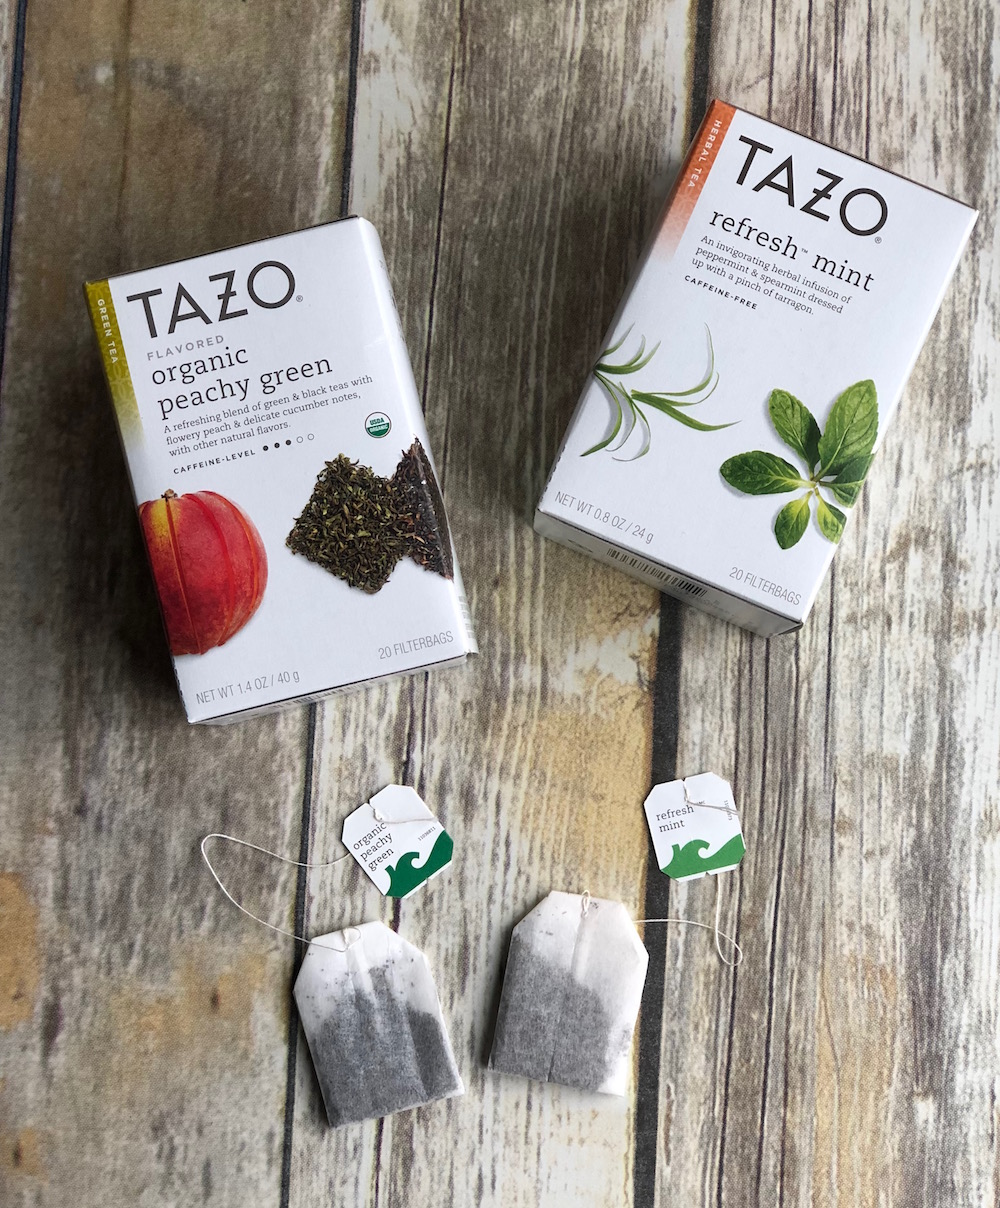 Cold Buster Tea Recipe - A homemade Starbucks Medicine Ball Recipe using Tazo Teas